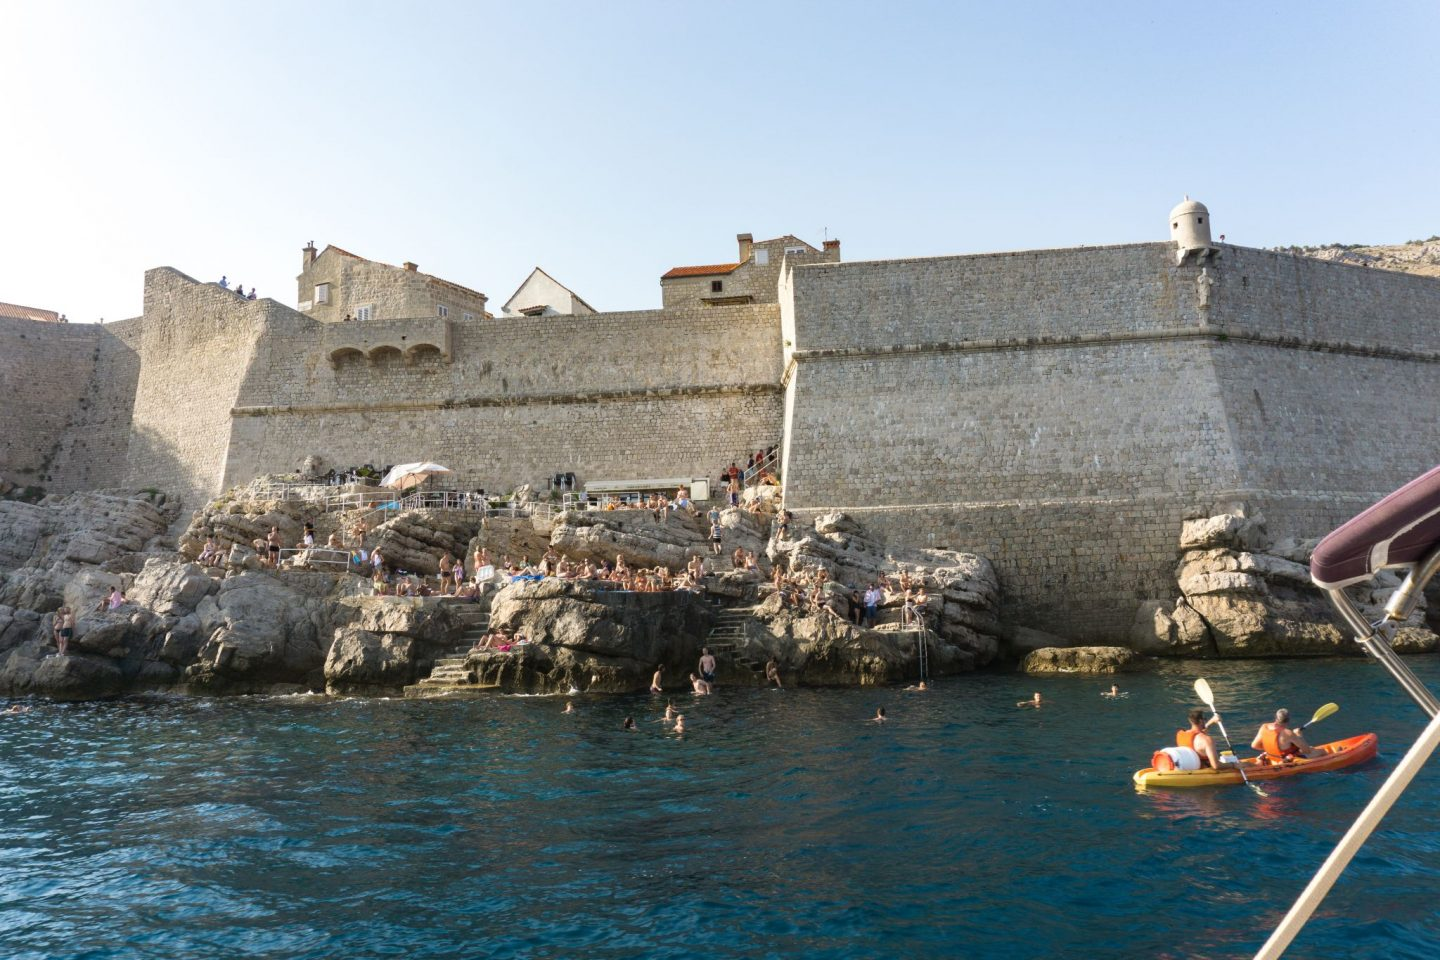 Travel Croatia Three Islands Tour Elafiti islands day trip Dubrovnik City Guide Internal Harbour Dubrovnik City Walls Nadia El Ferdaoussi the daily s'elf Buža bar cliff diving